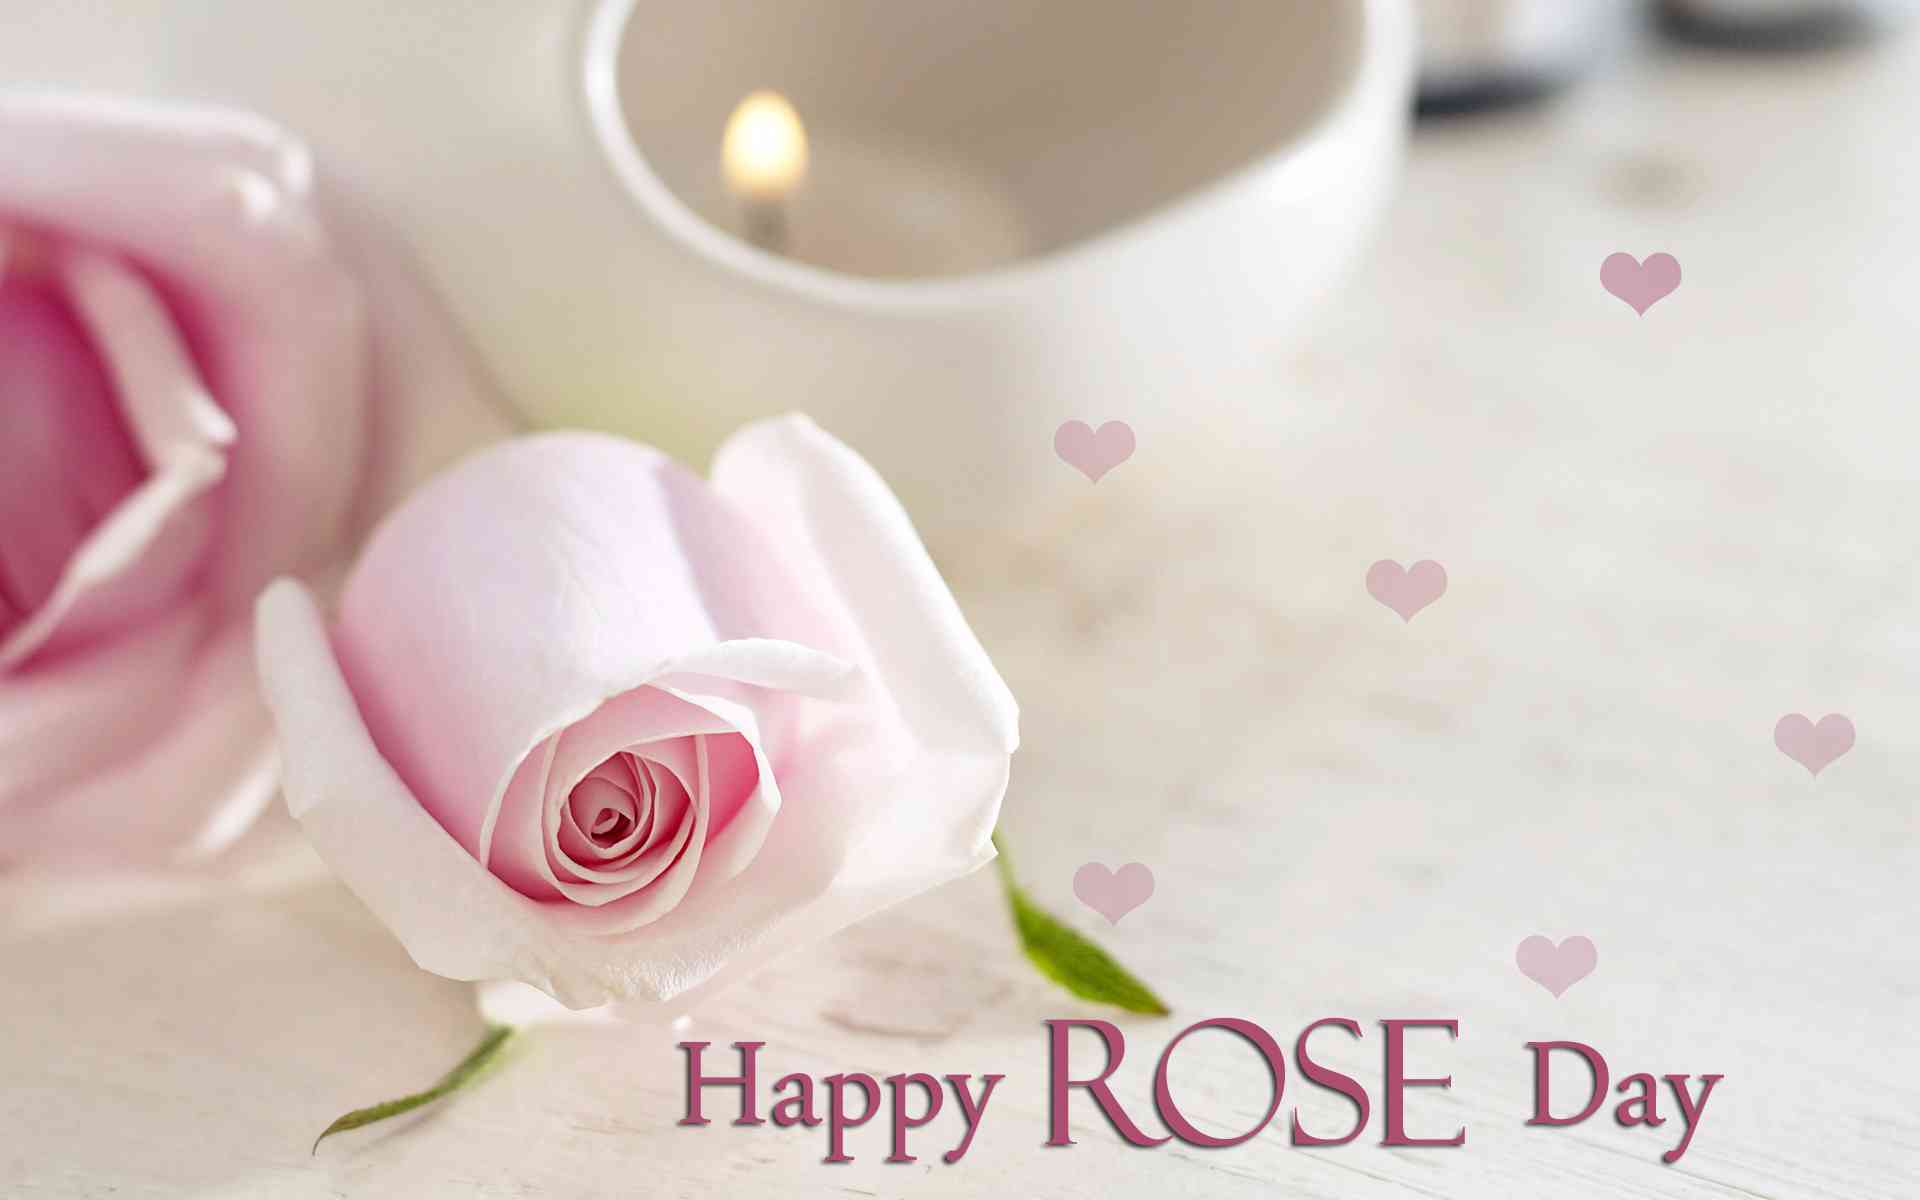 images of rose day